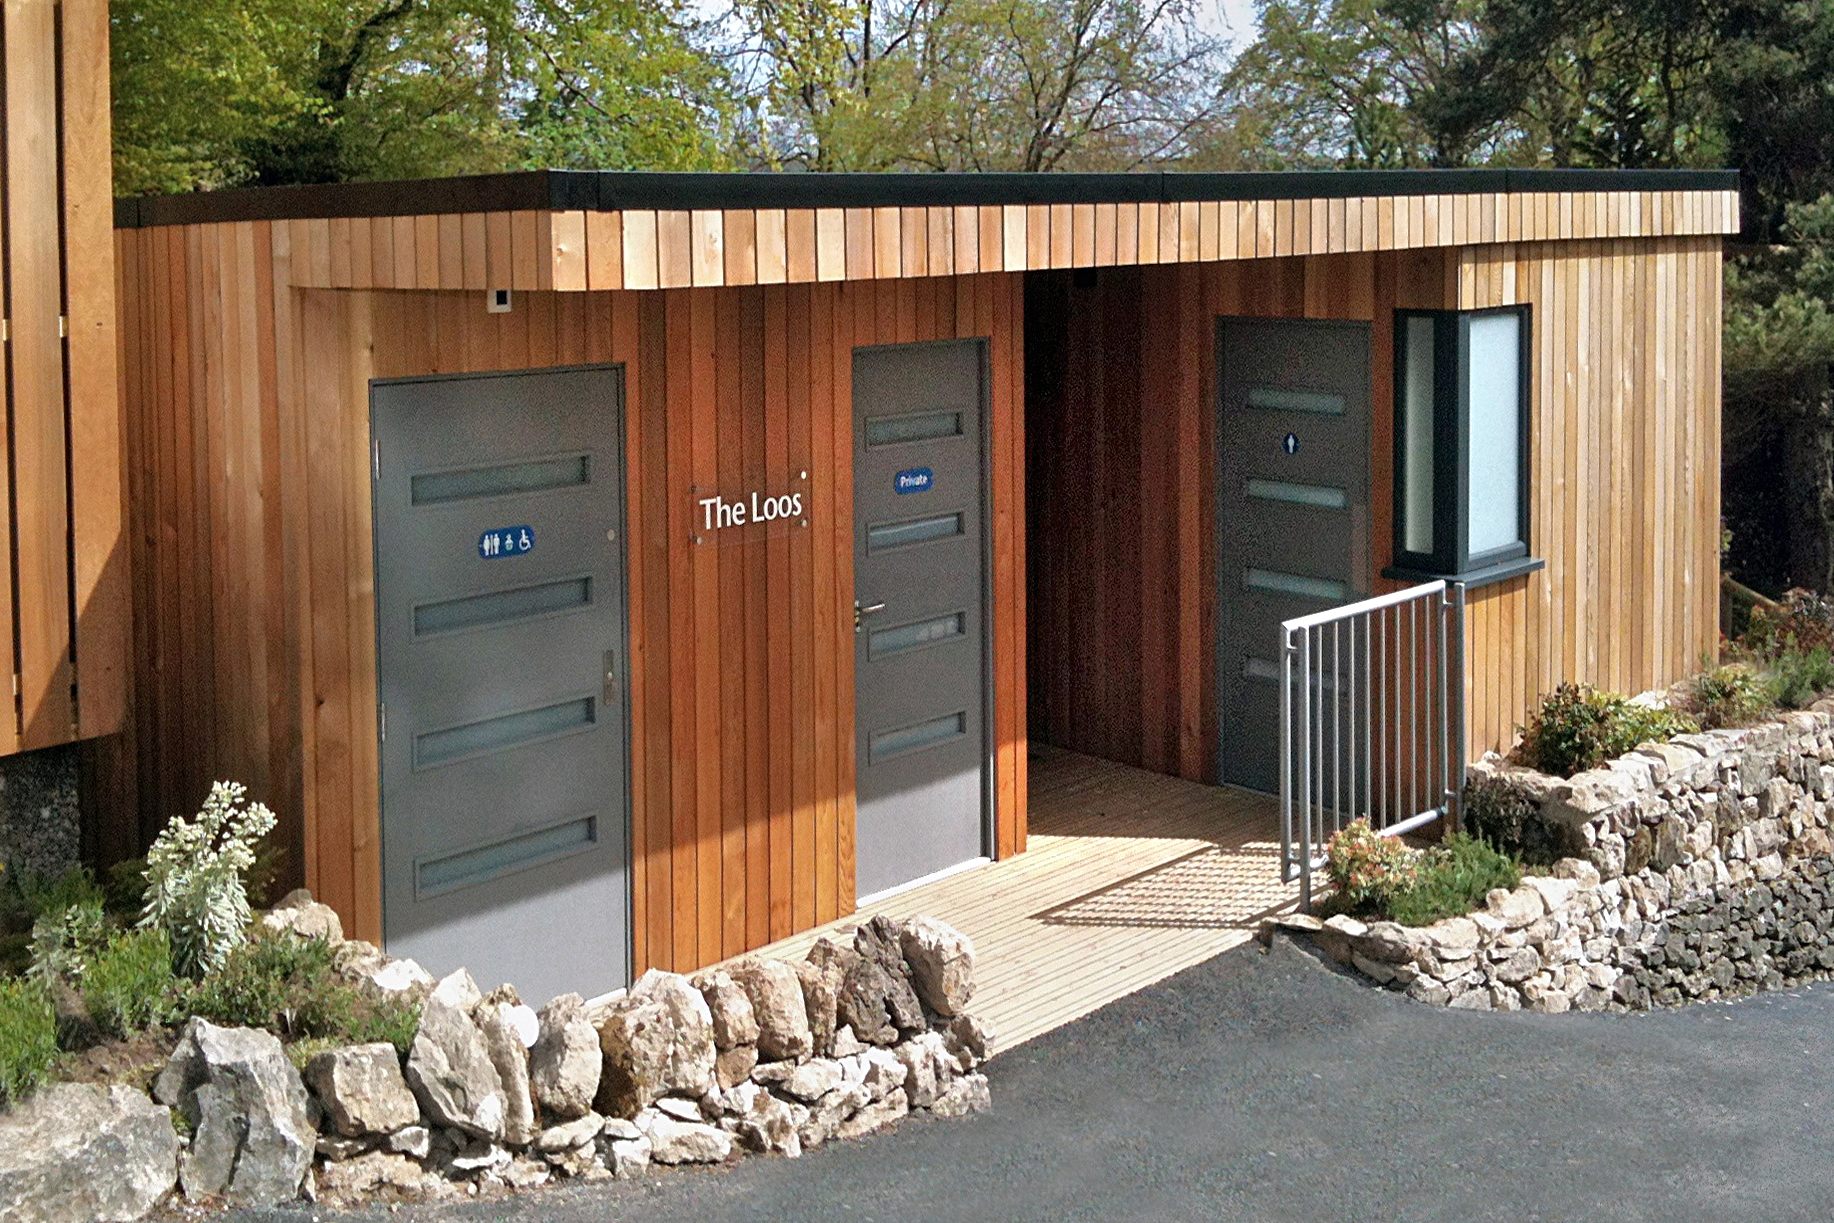 New facilities at visitor attraction